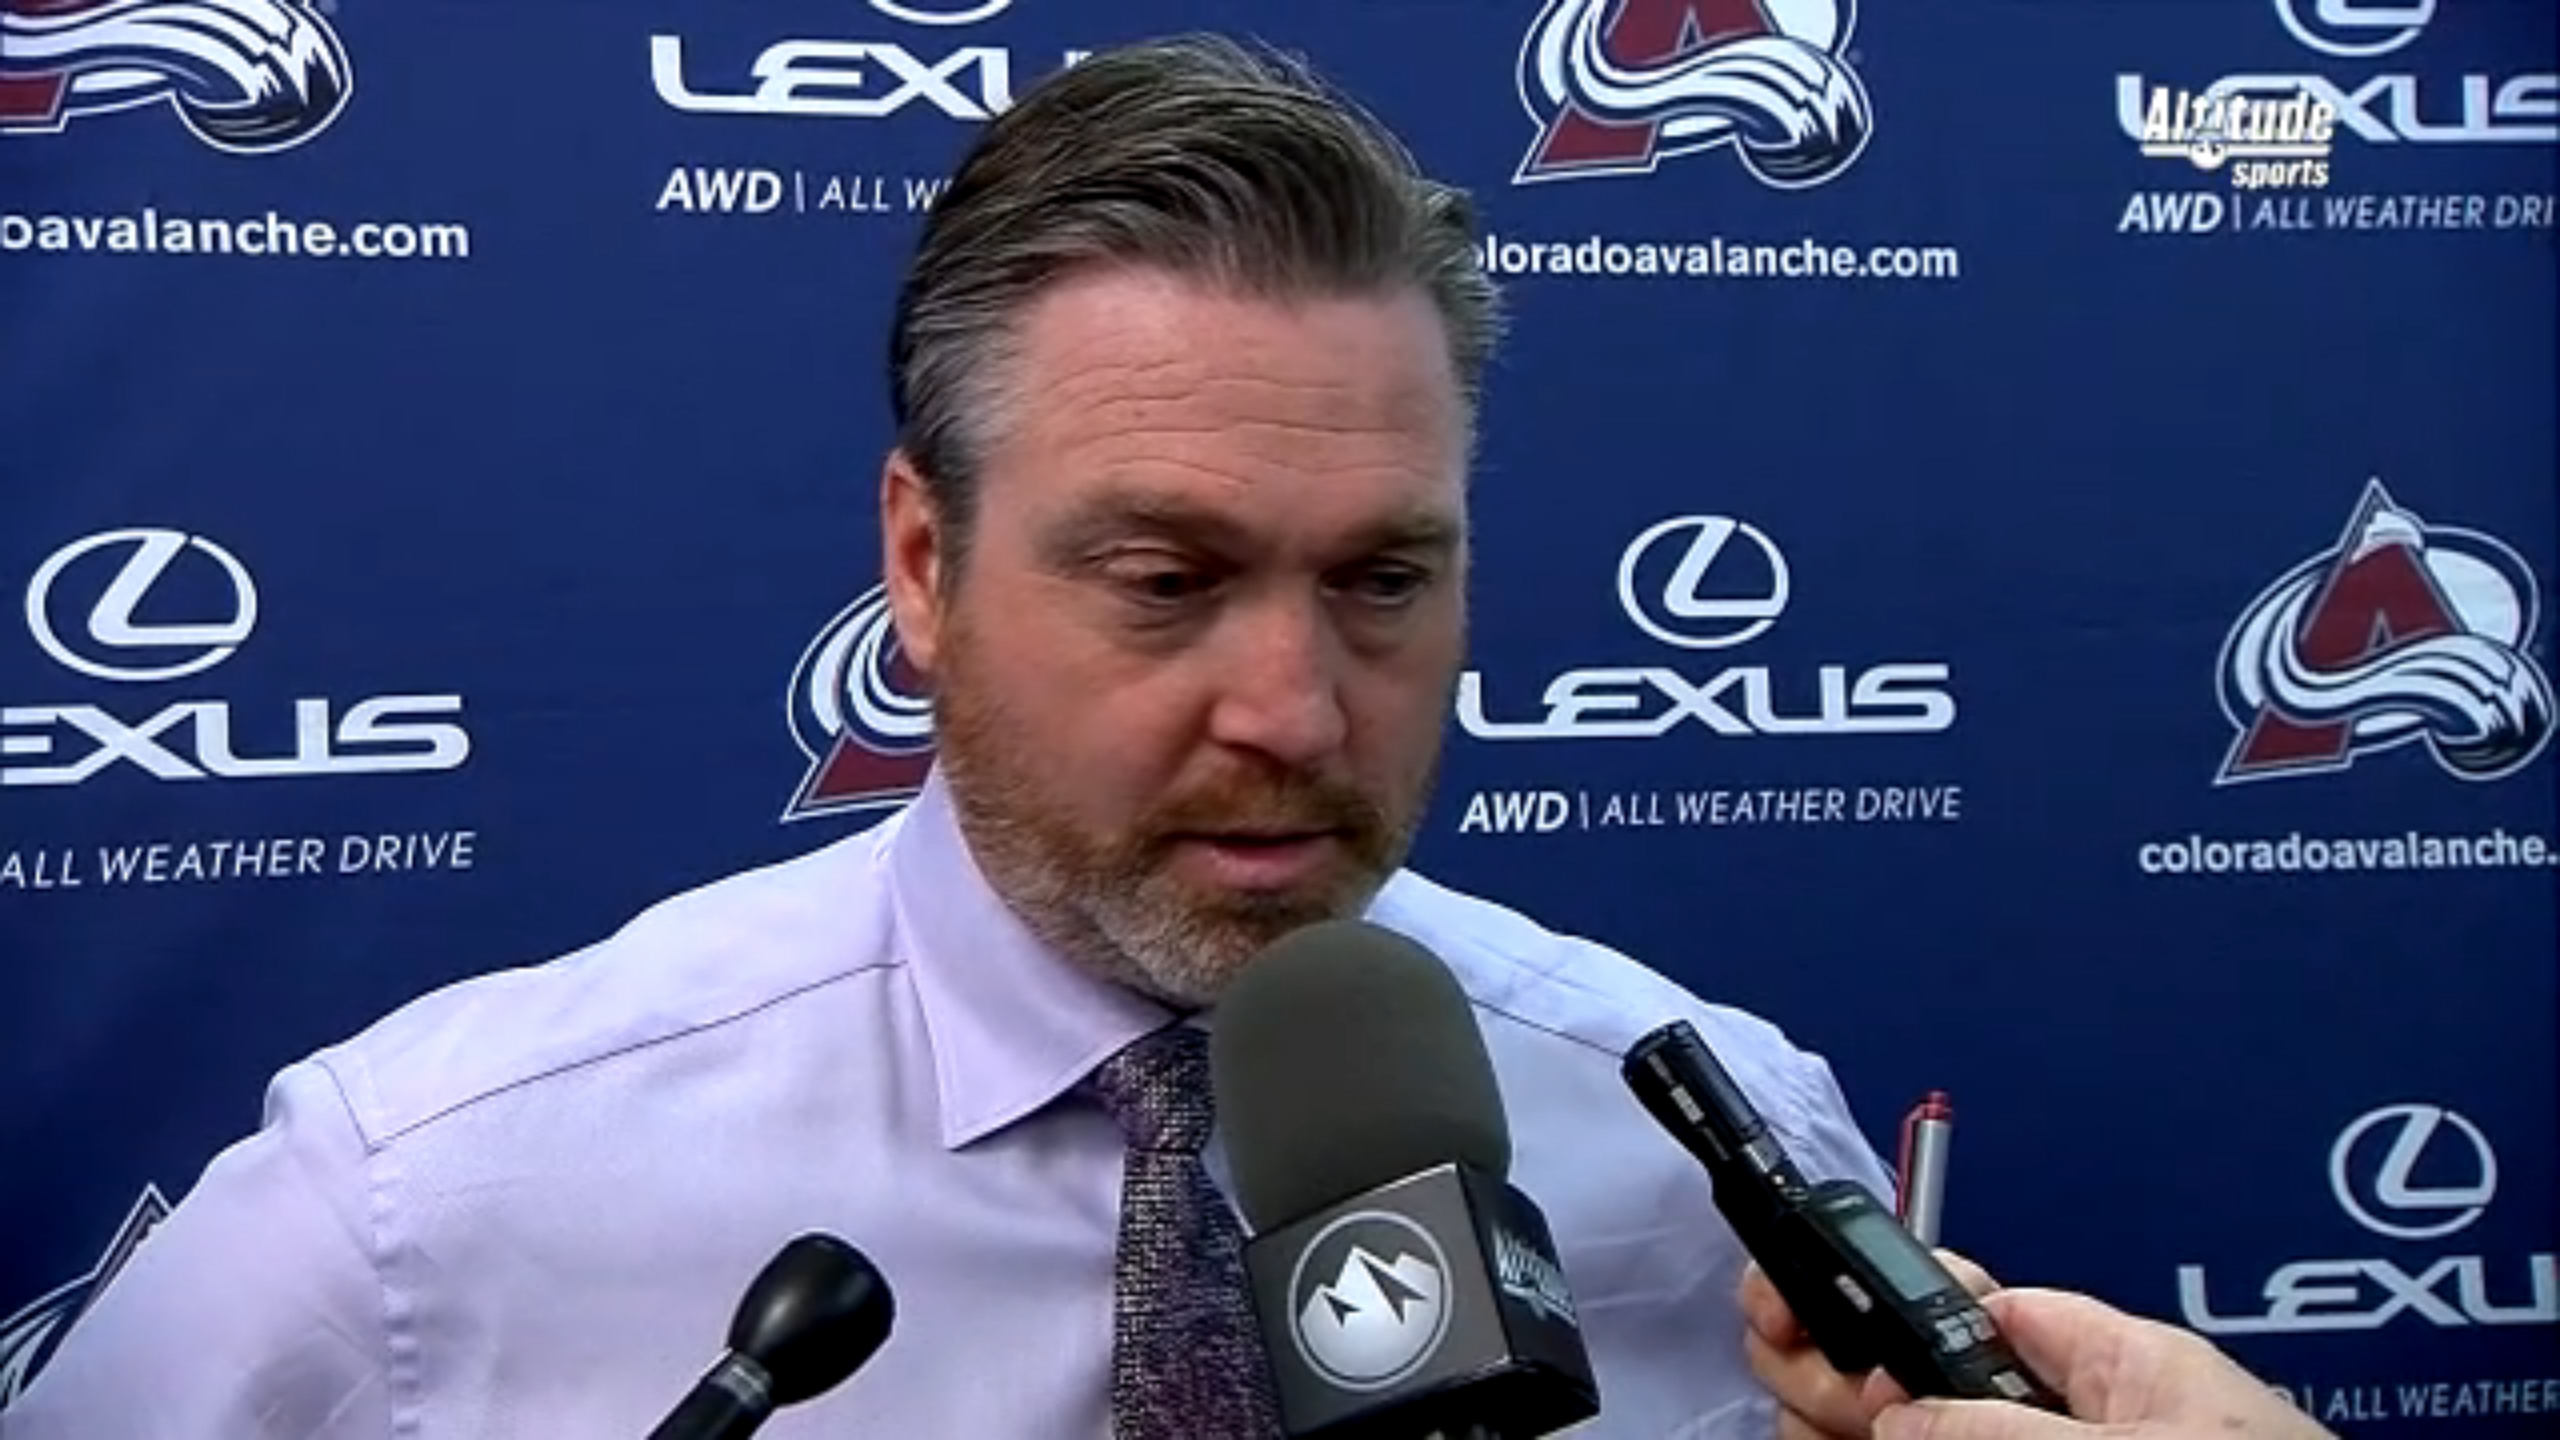 Patrick-Roy-Post-Game-121315.jpg